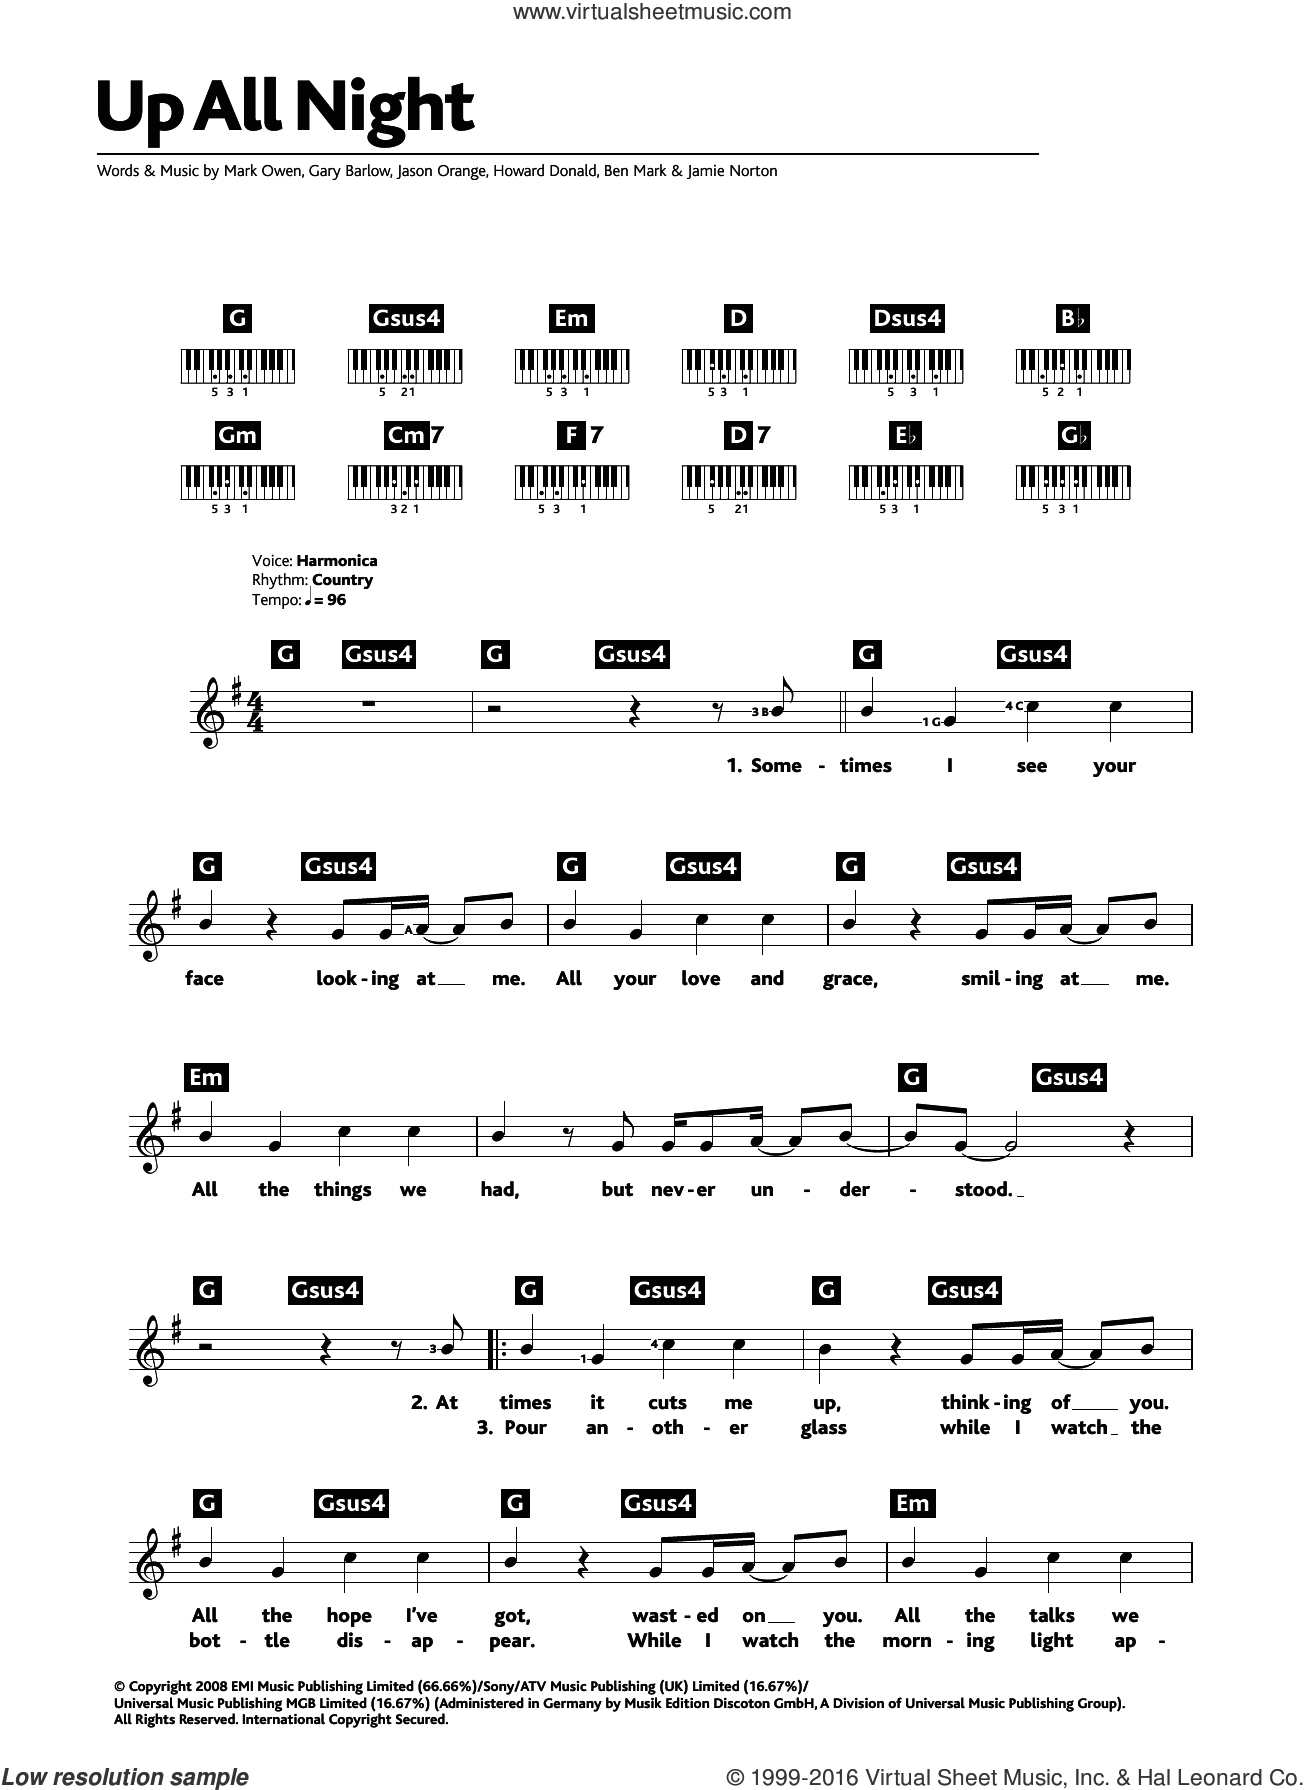 Up All Night sheet music for piano solo (chords, lyrics, melody) by Mark Owen